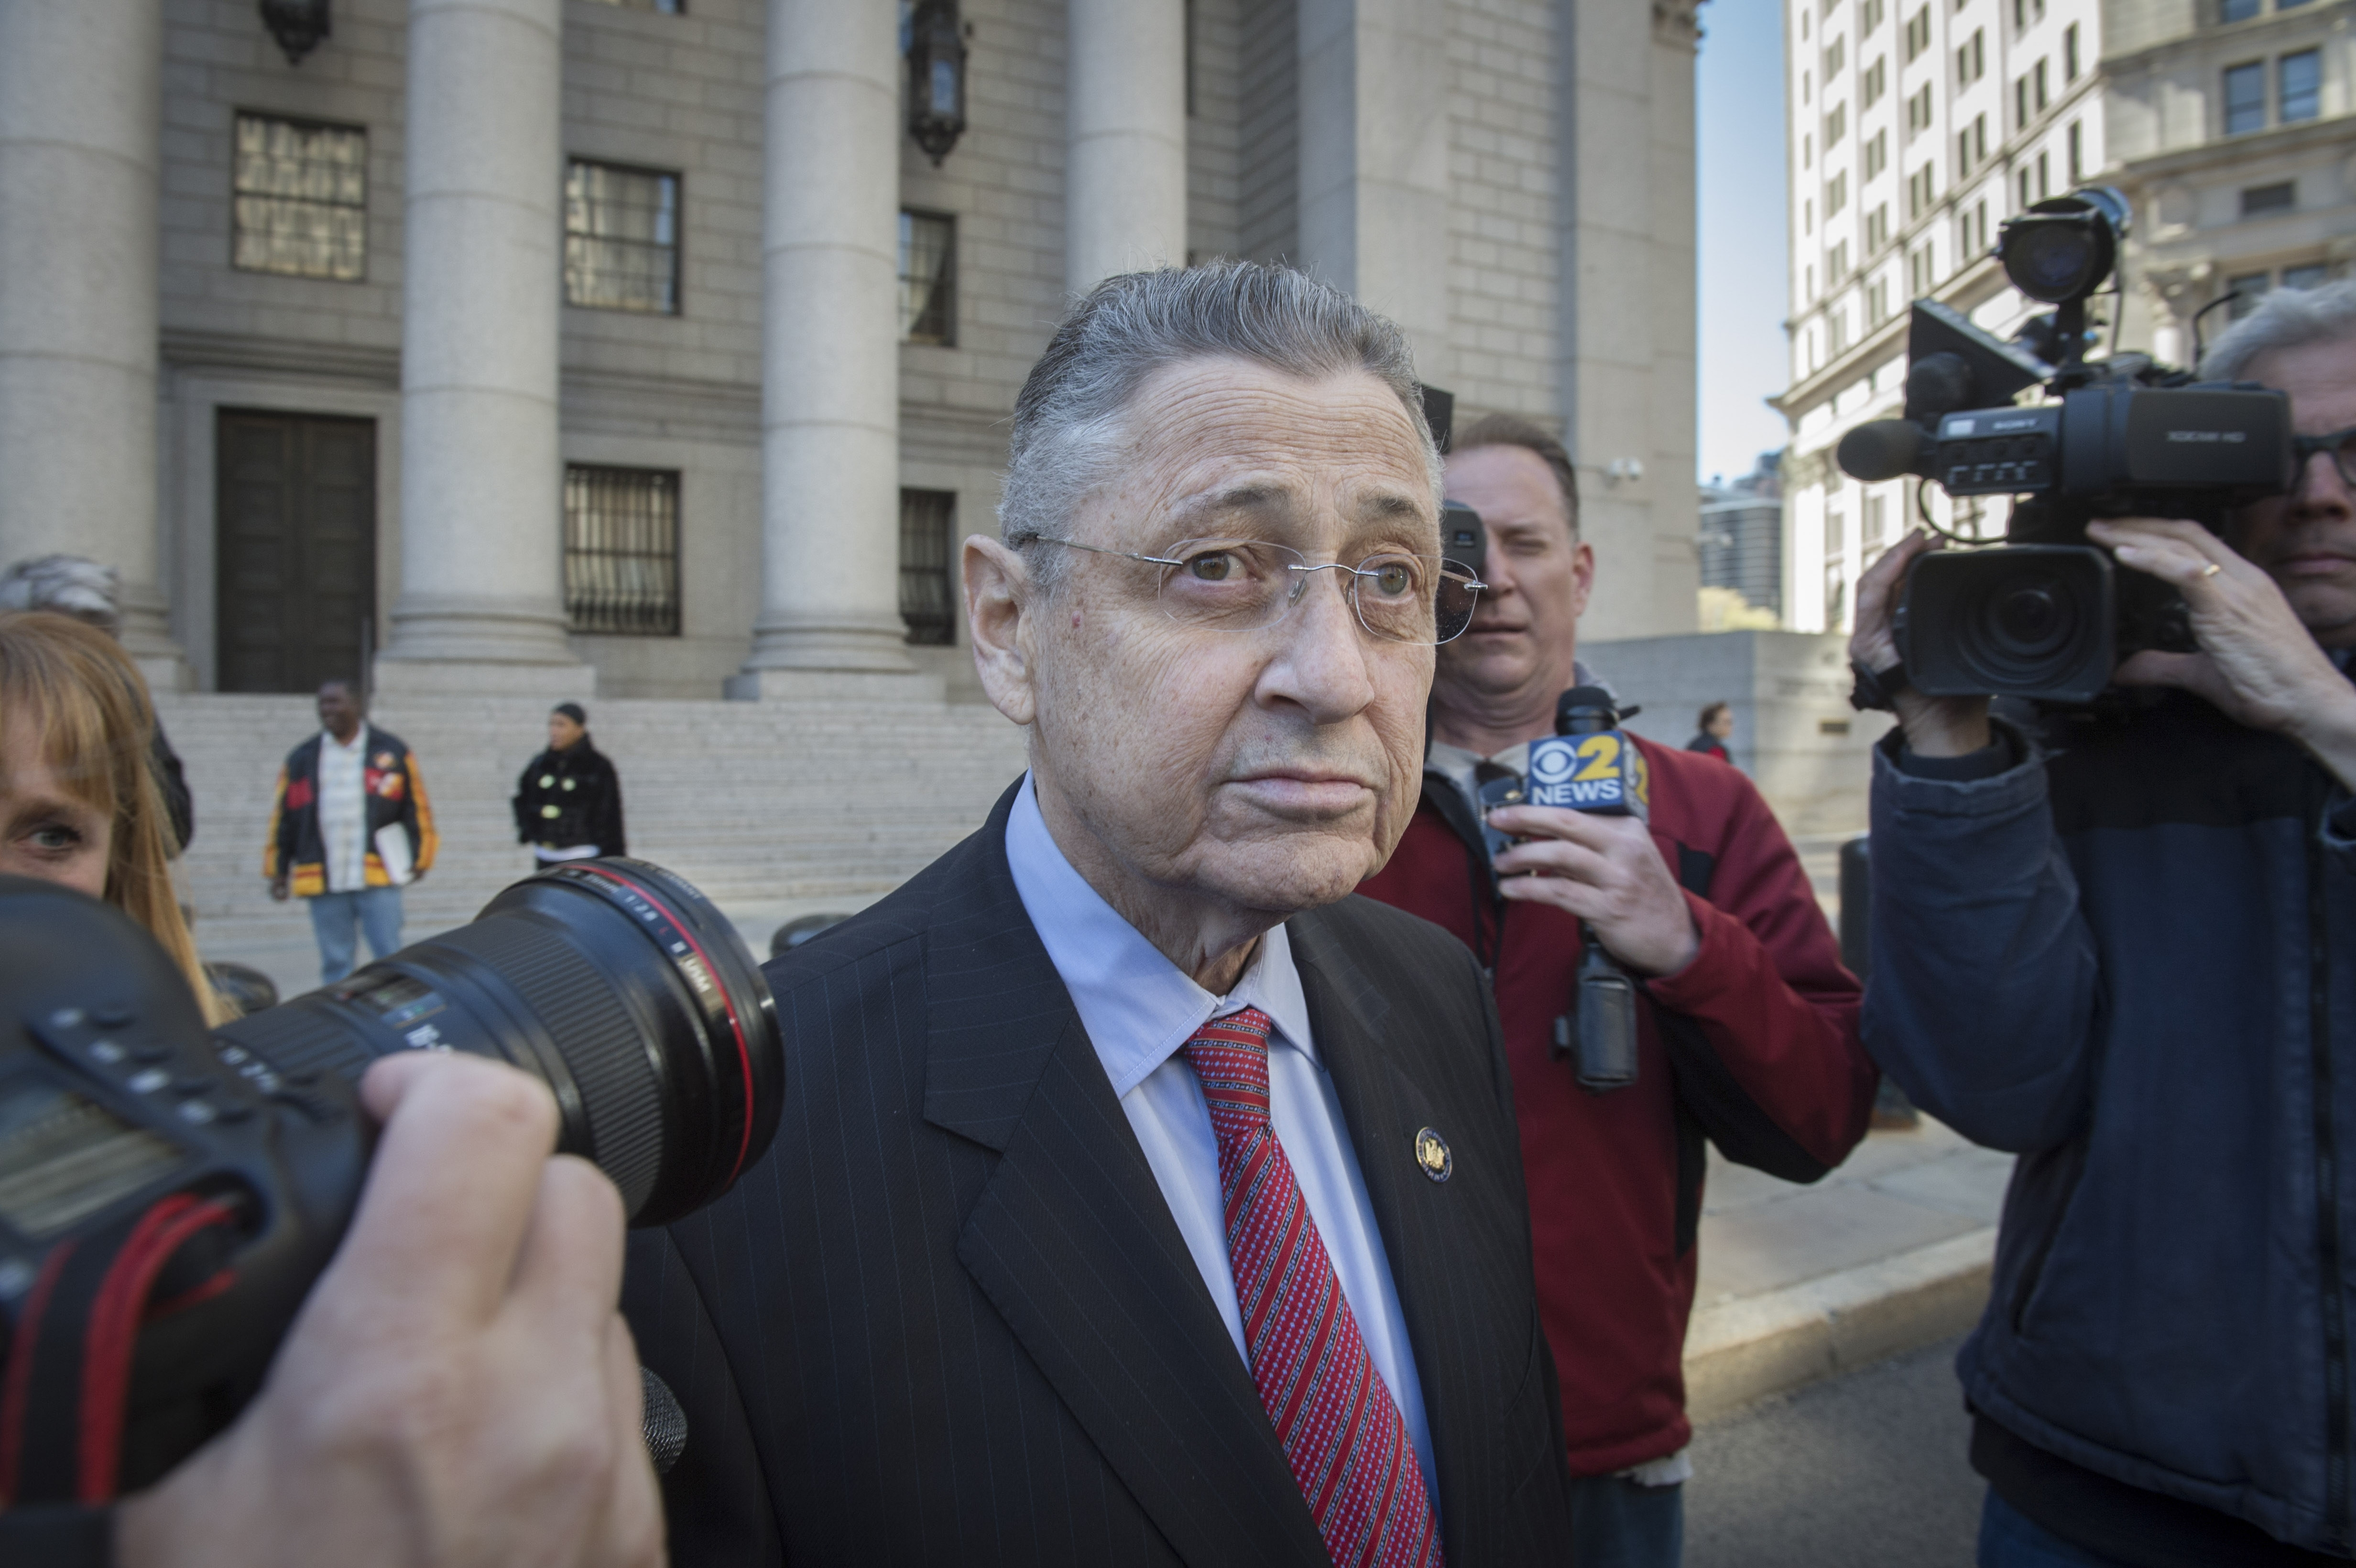 Sheldon Silver might still be speaker of the State Assembly if ethics rules had been in place banning the outside income that led to his conviction on felony charges of corruption.